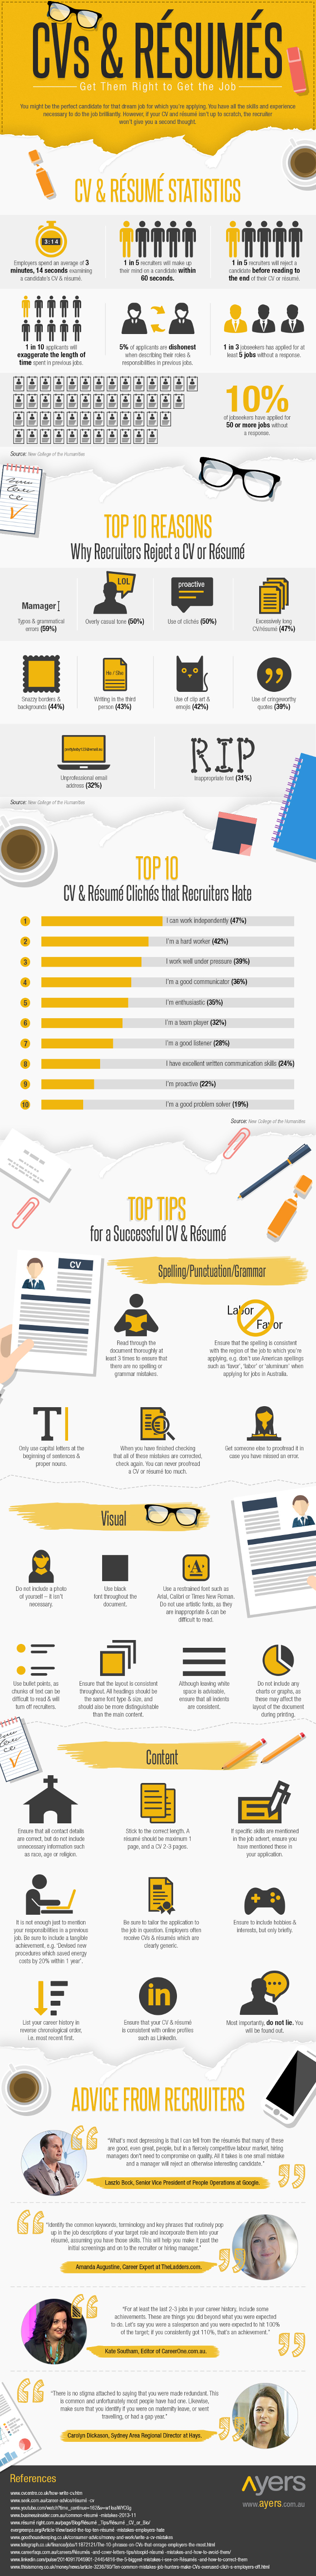 CV tips infographic